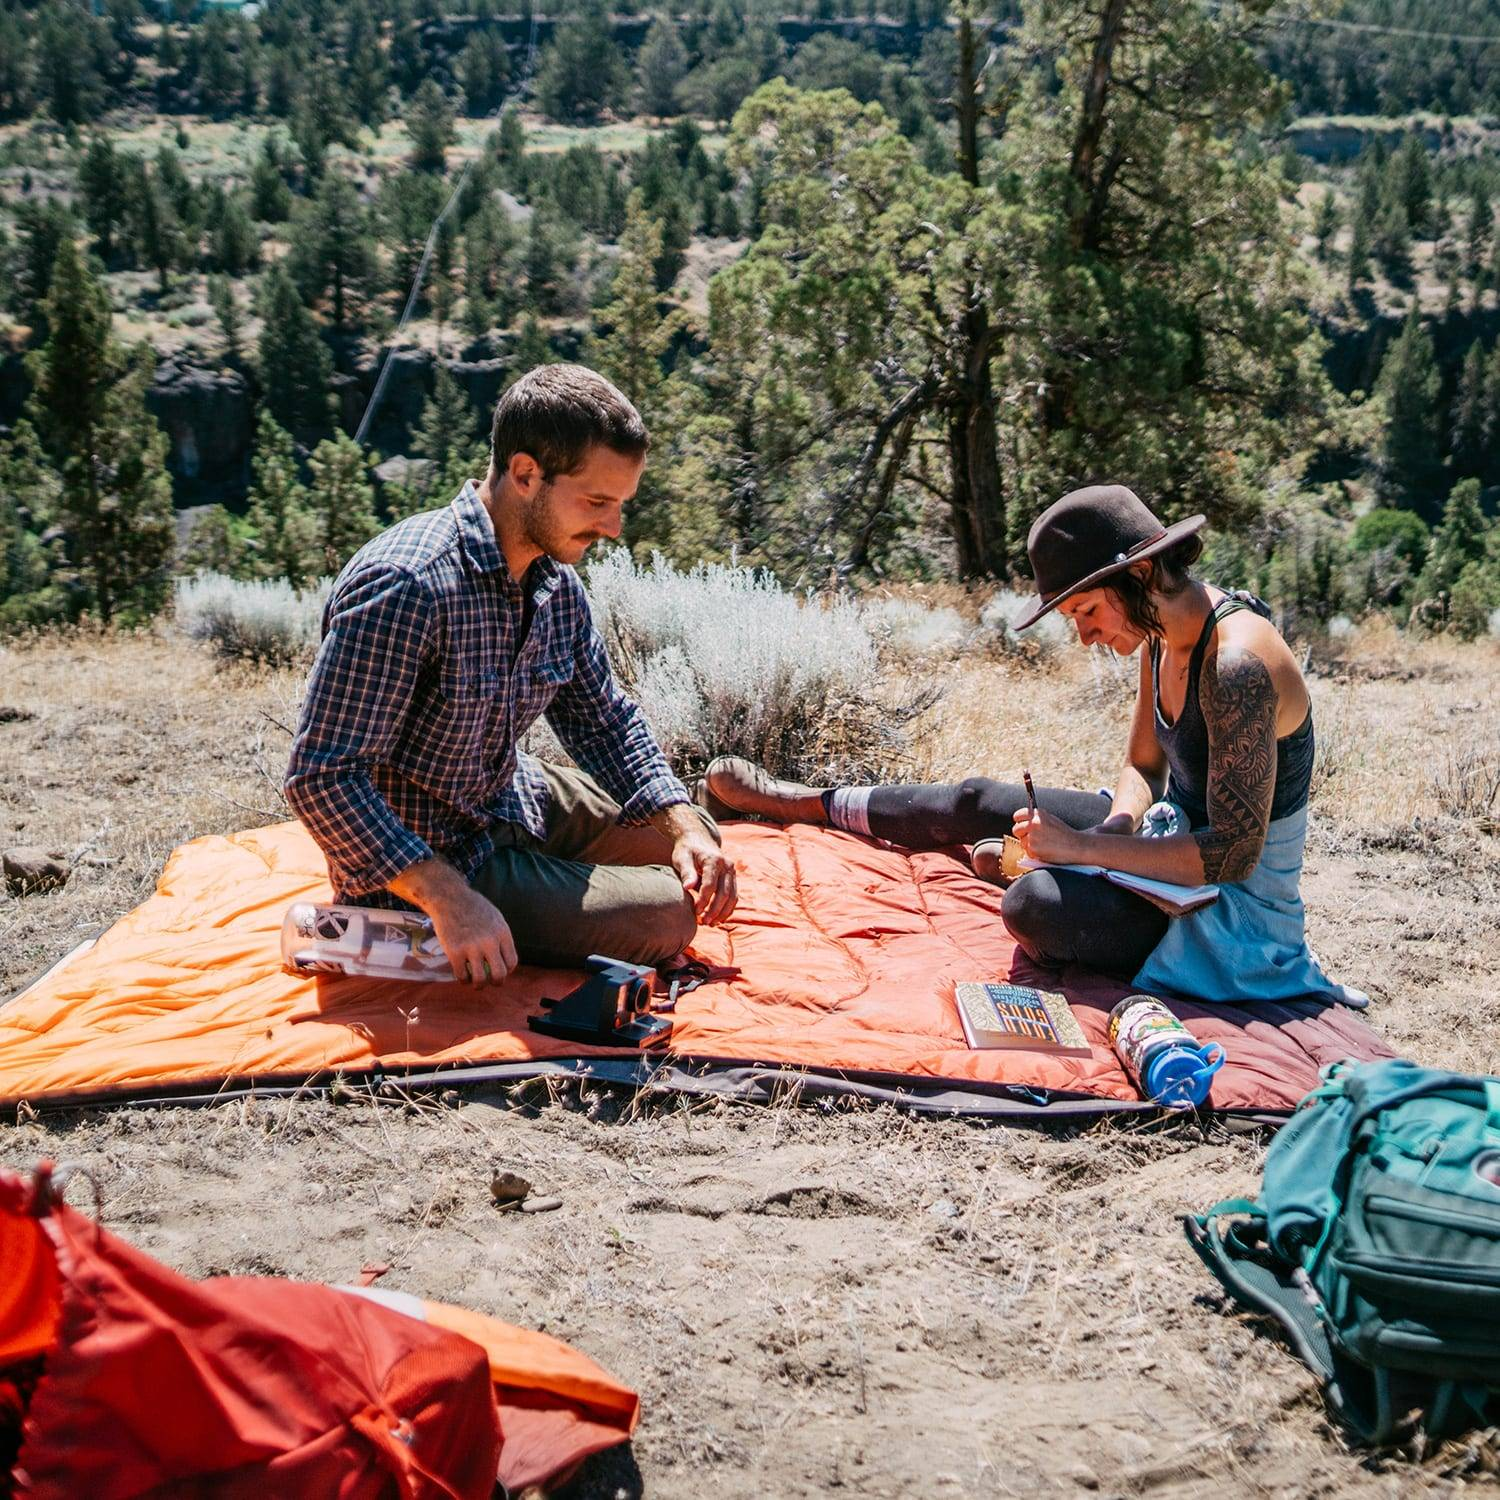 Couple sitting on picnic blanket outdoors